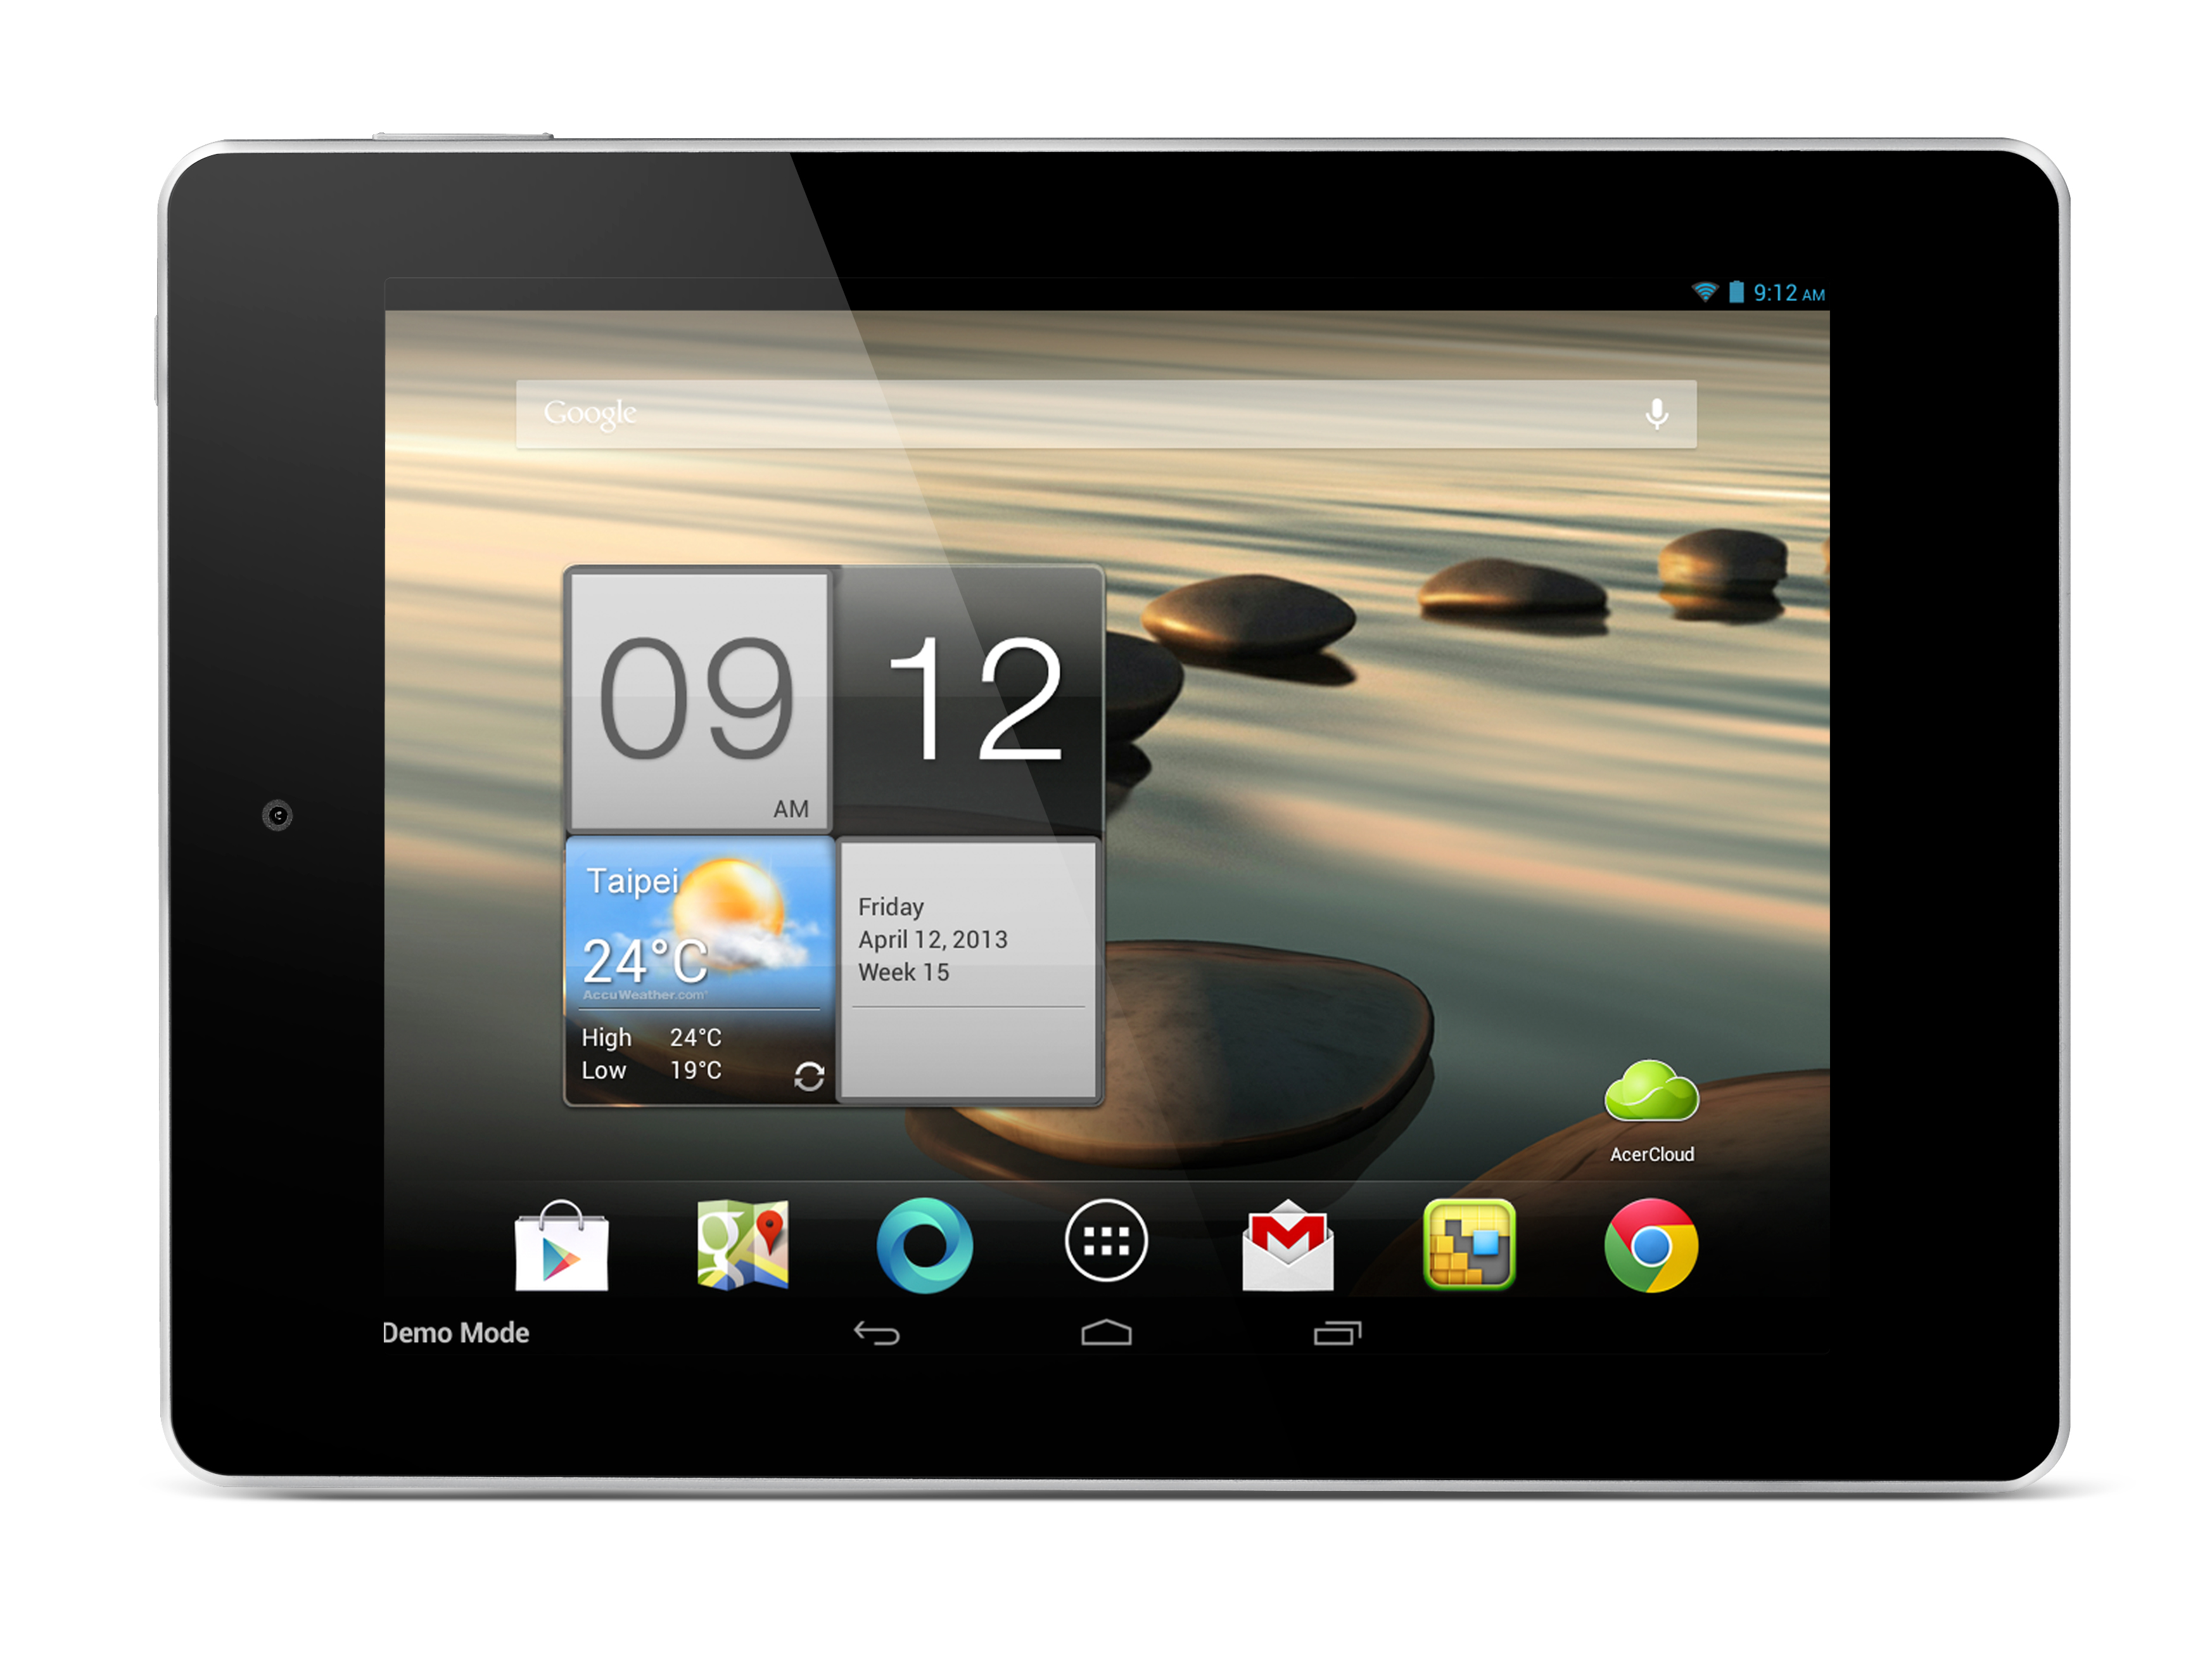 Acer Just Restarted the Android Tablet Race, New Target is $100